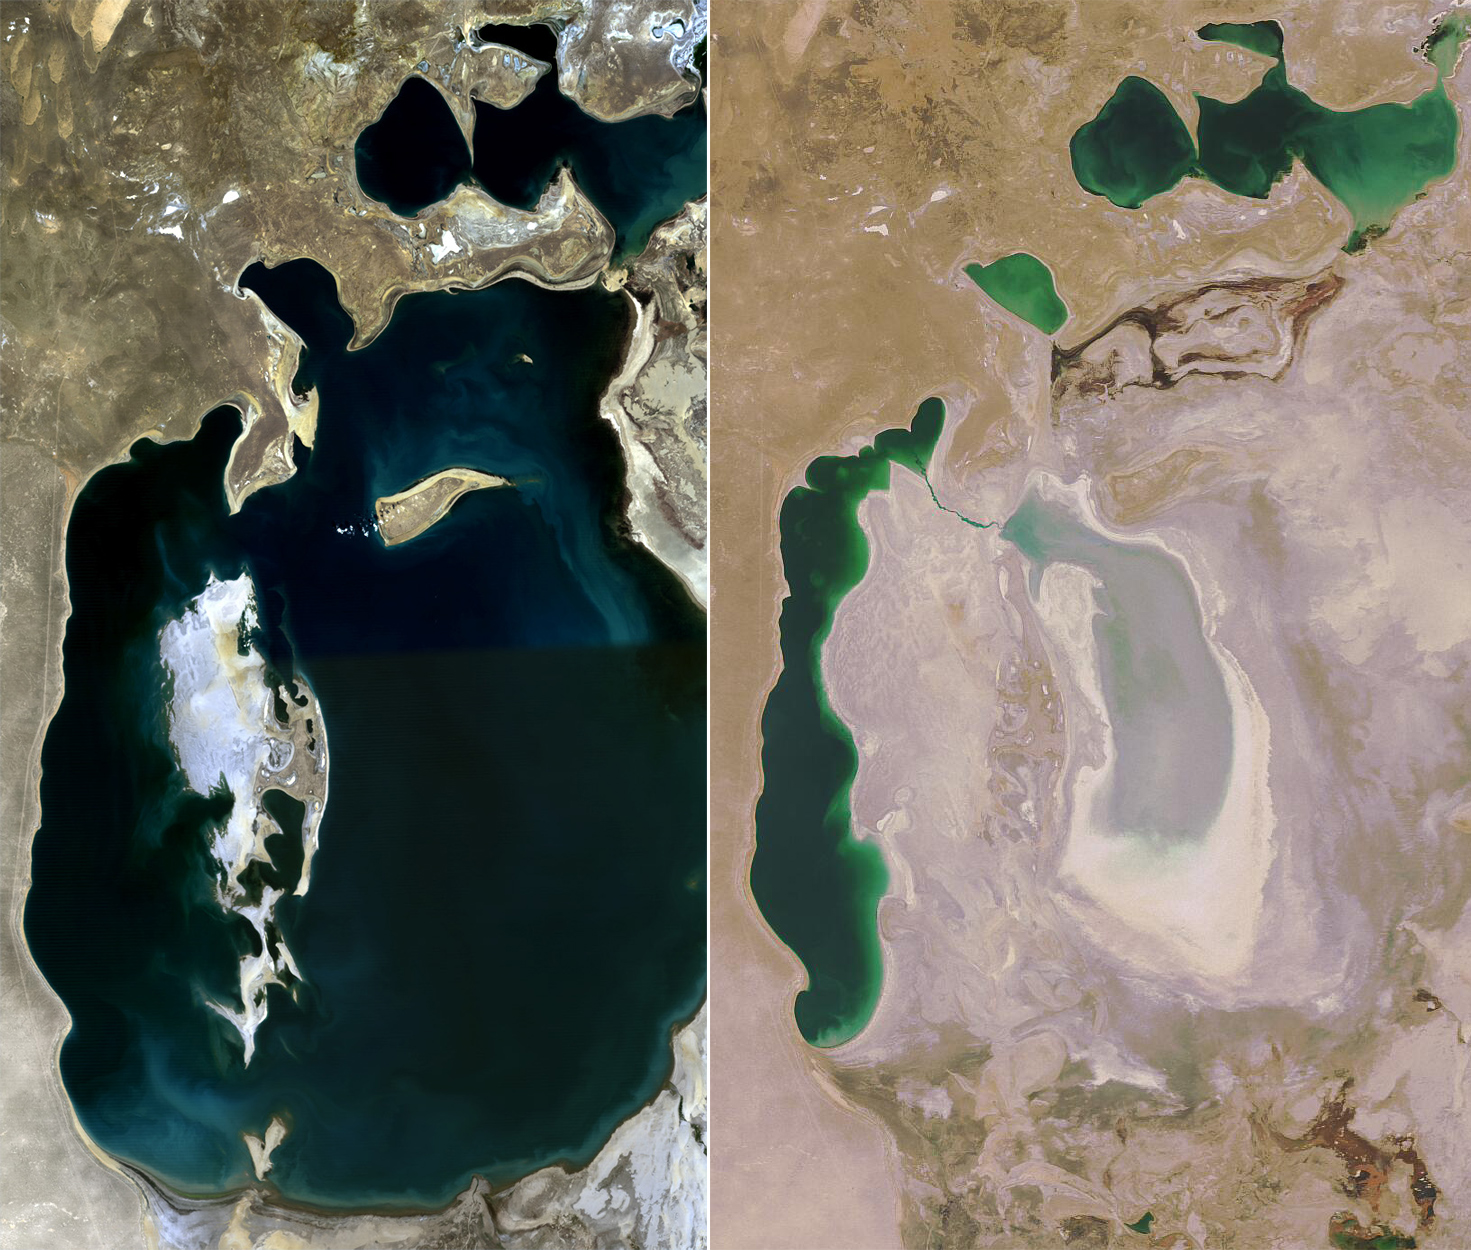 Uzbekistan Calls for International Help Over Aral Sea, Now Almost Dry